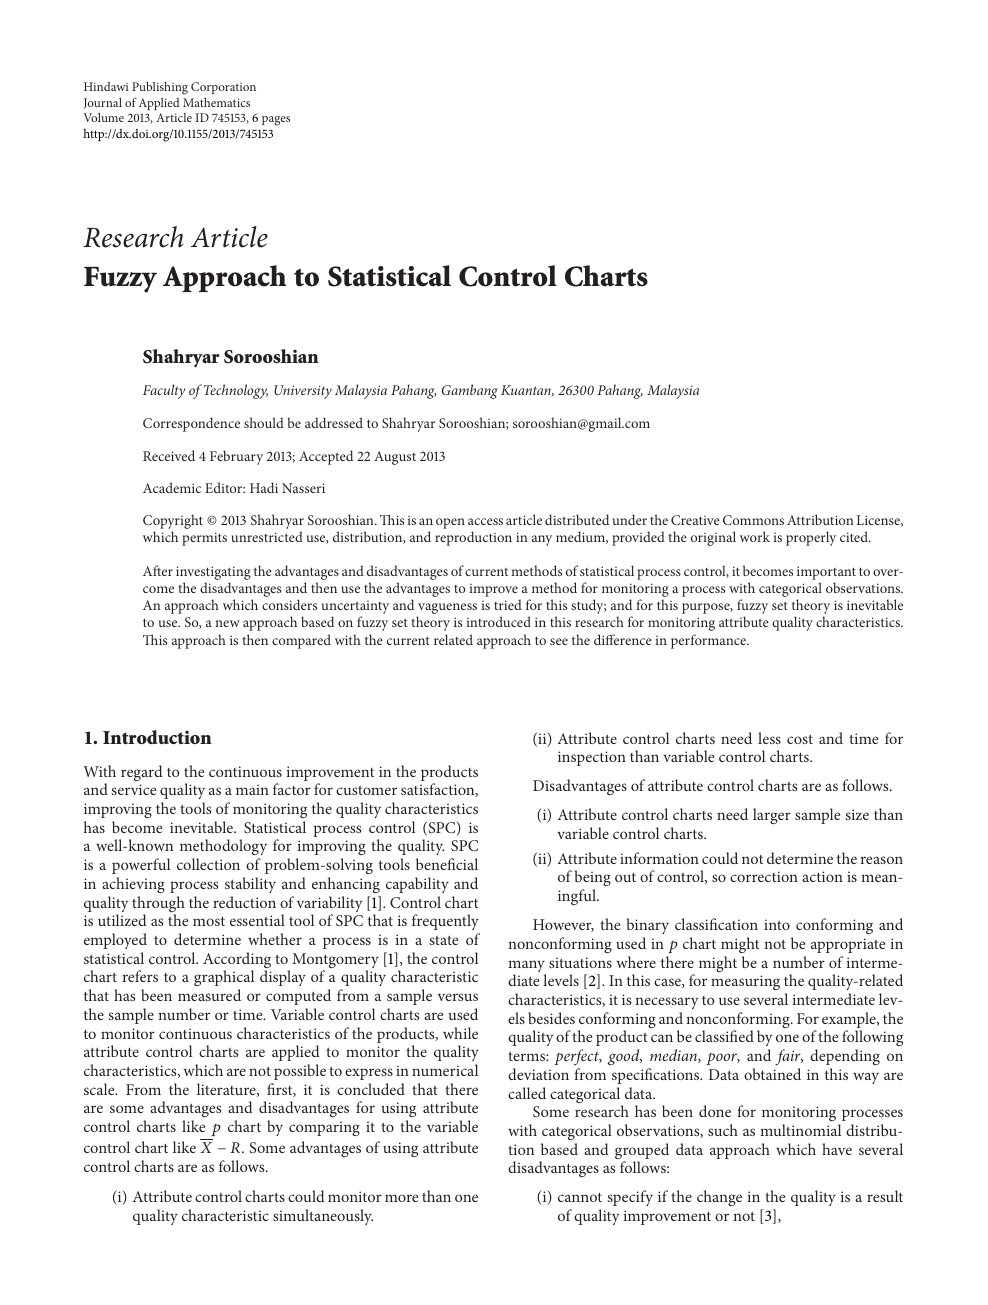 Fuzzy Approach to Statistical Control Charts – topic of